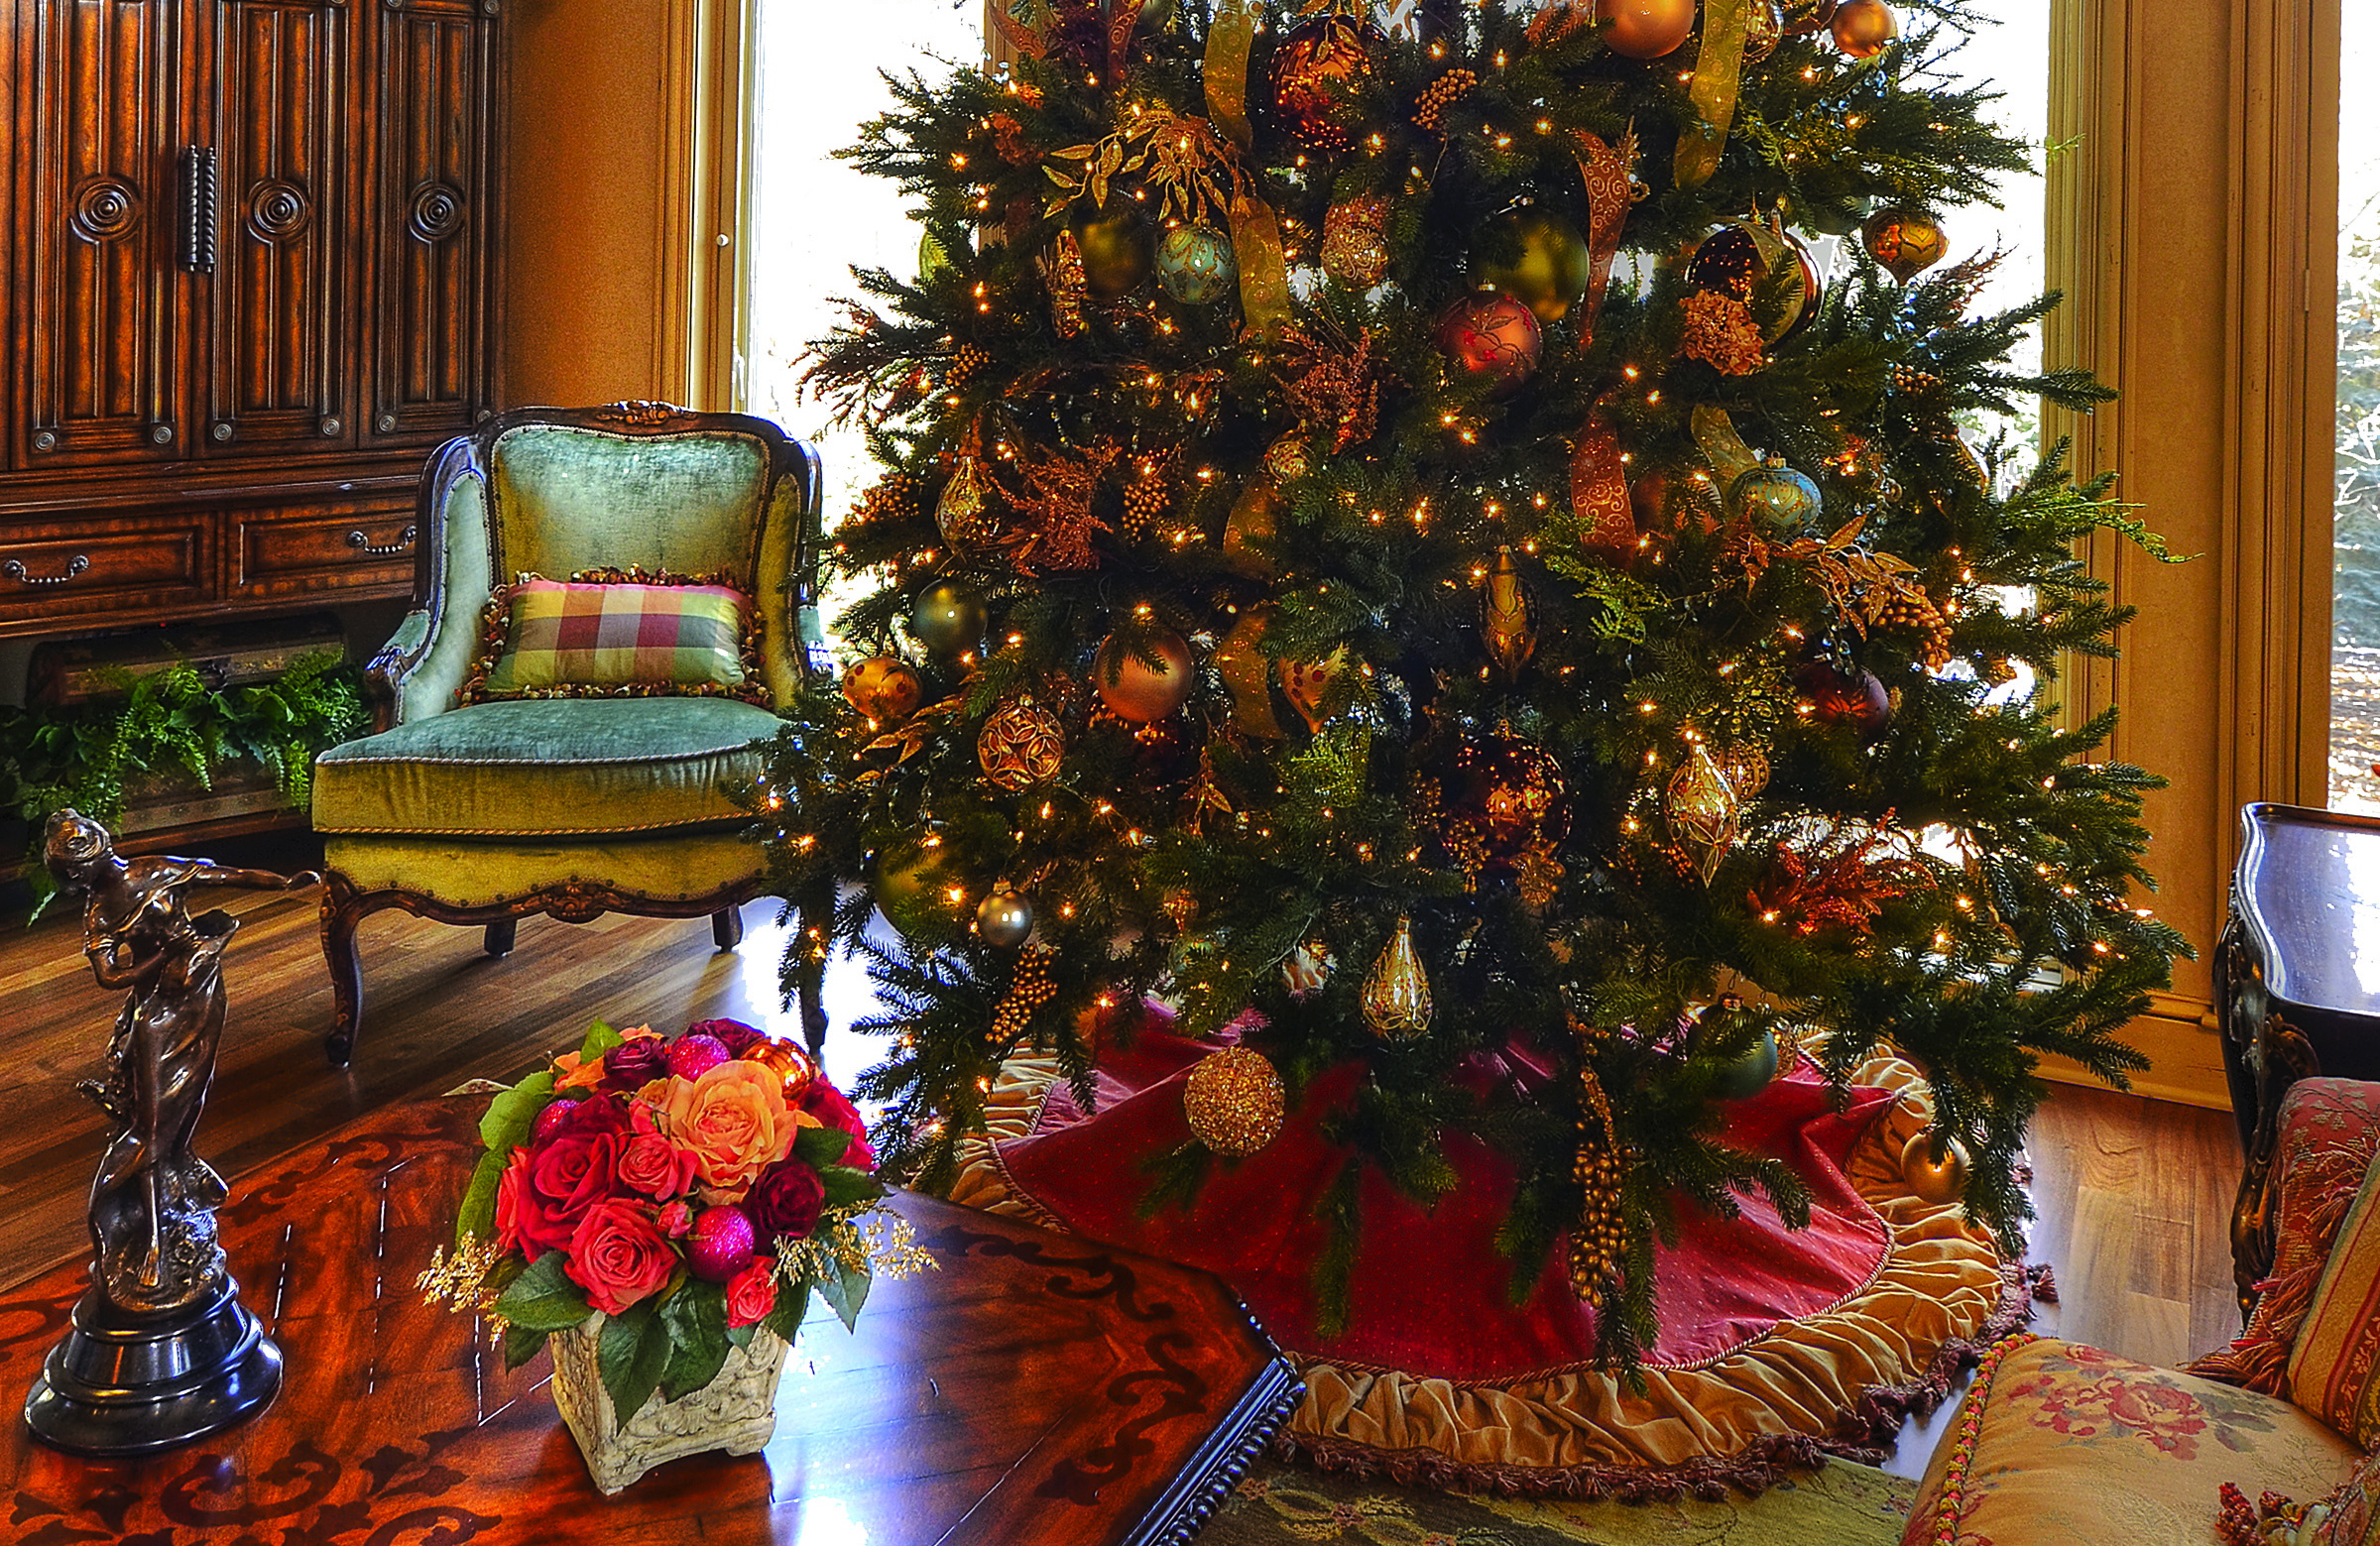 12 ft tree with custom made tree skirt.jpg